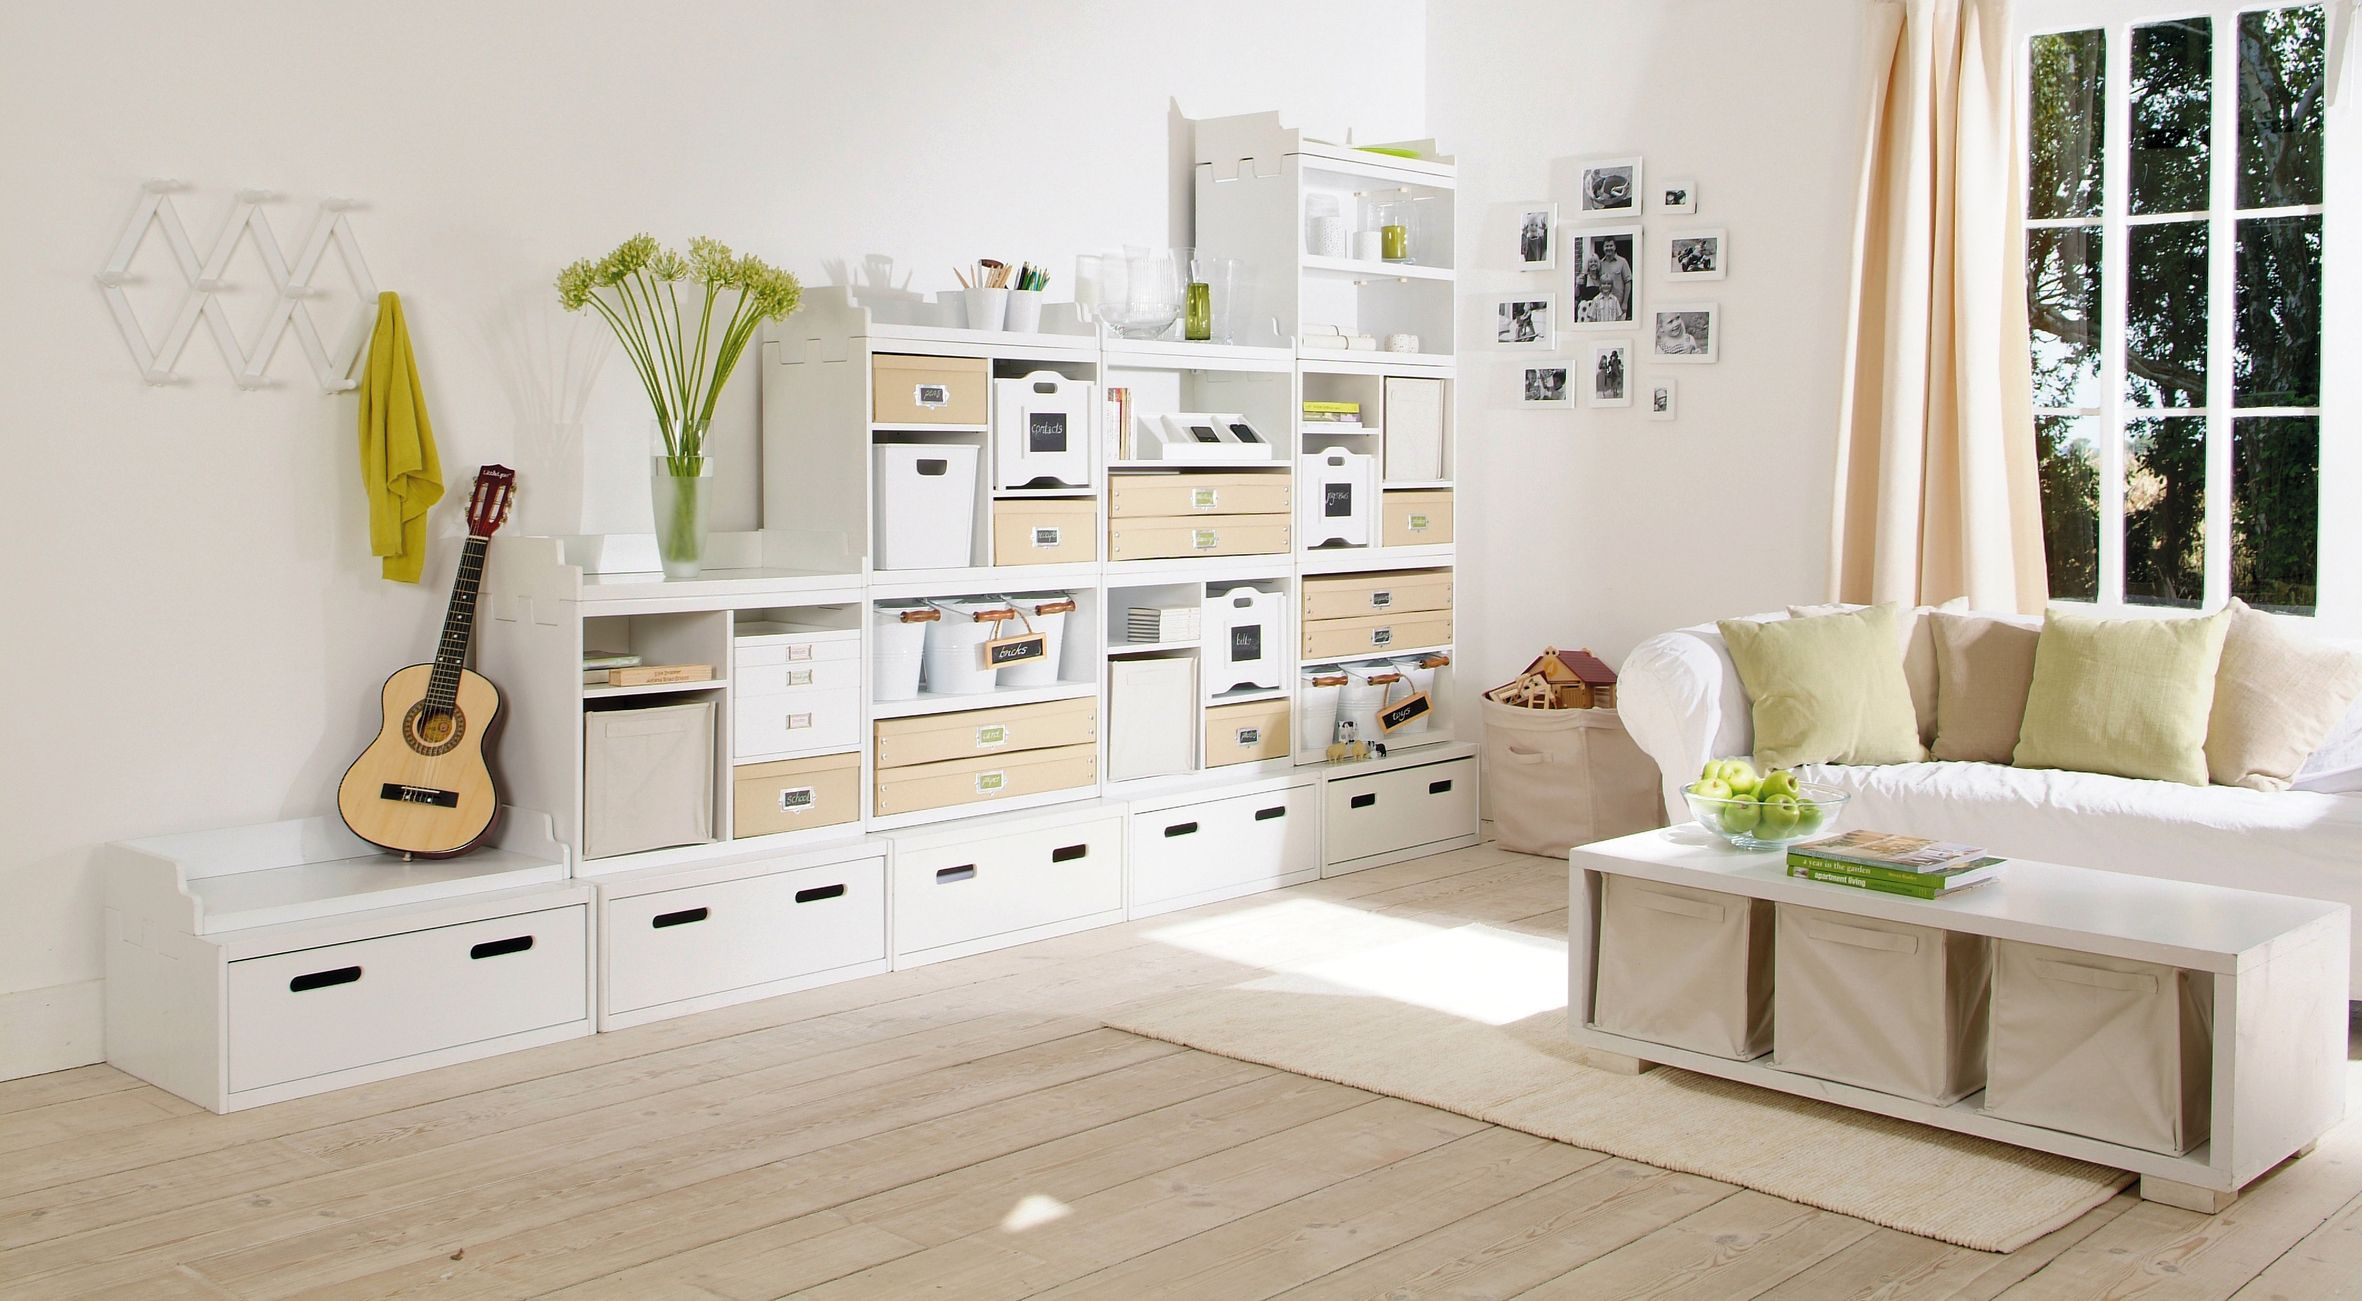 Modular Storage Toy Box incl. Ledged Shelf | Interior: Storage ...